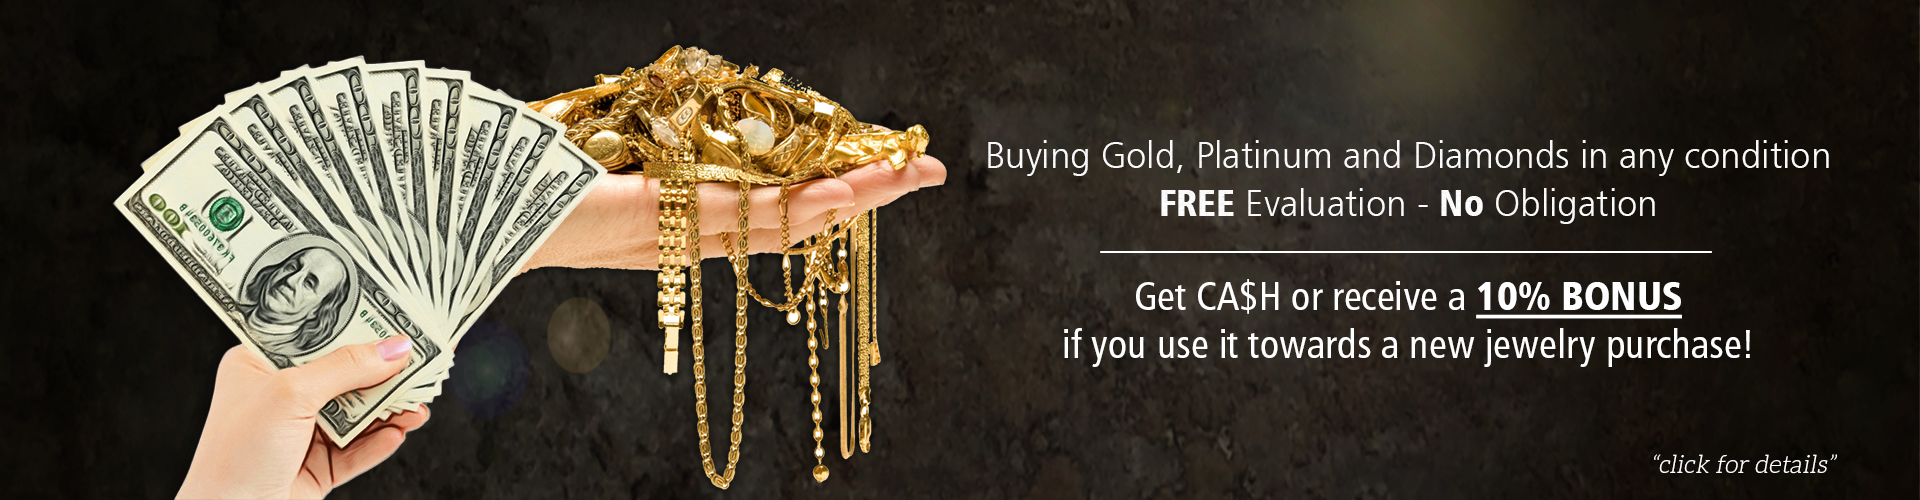 Sell your scrap gold, platinum and diamonds